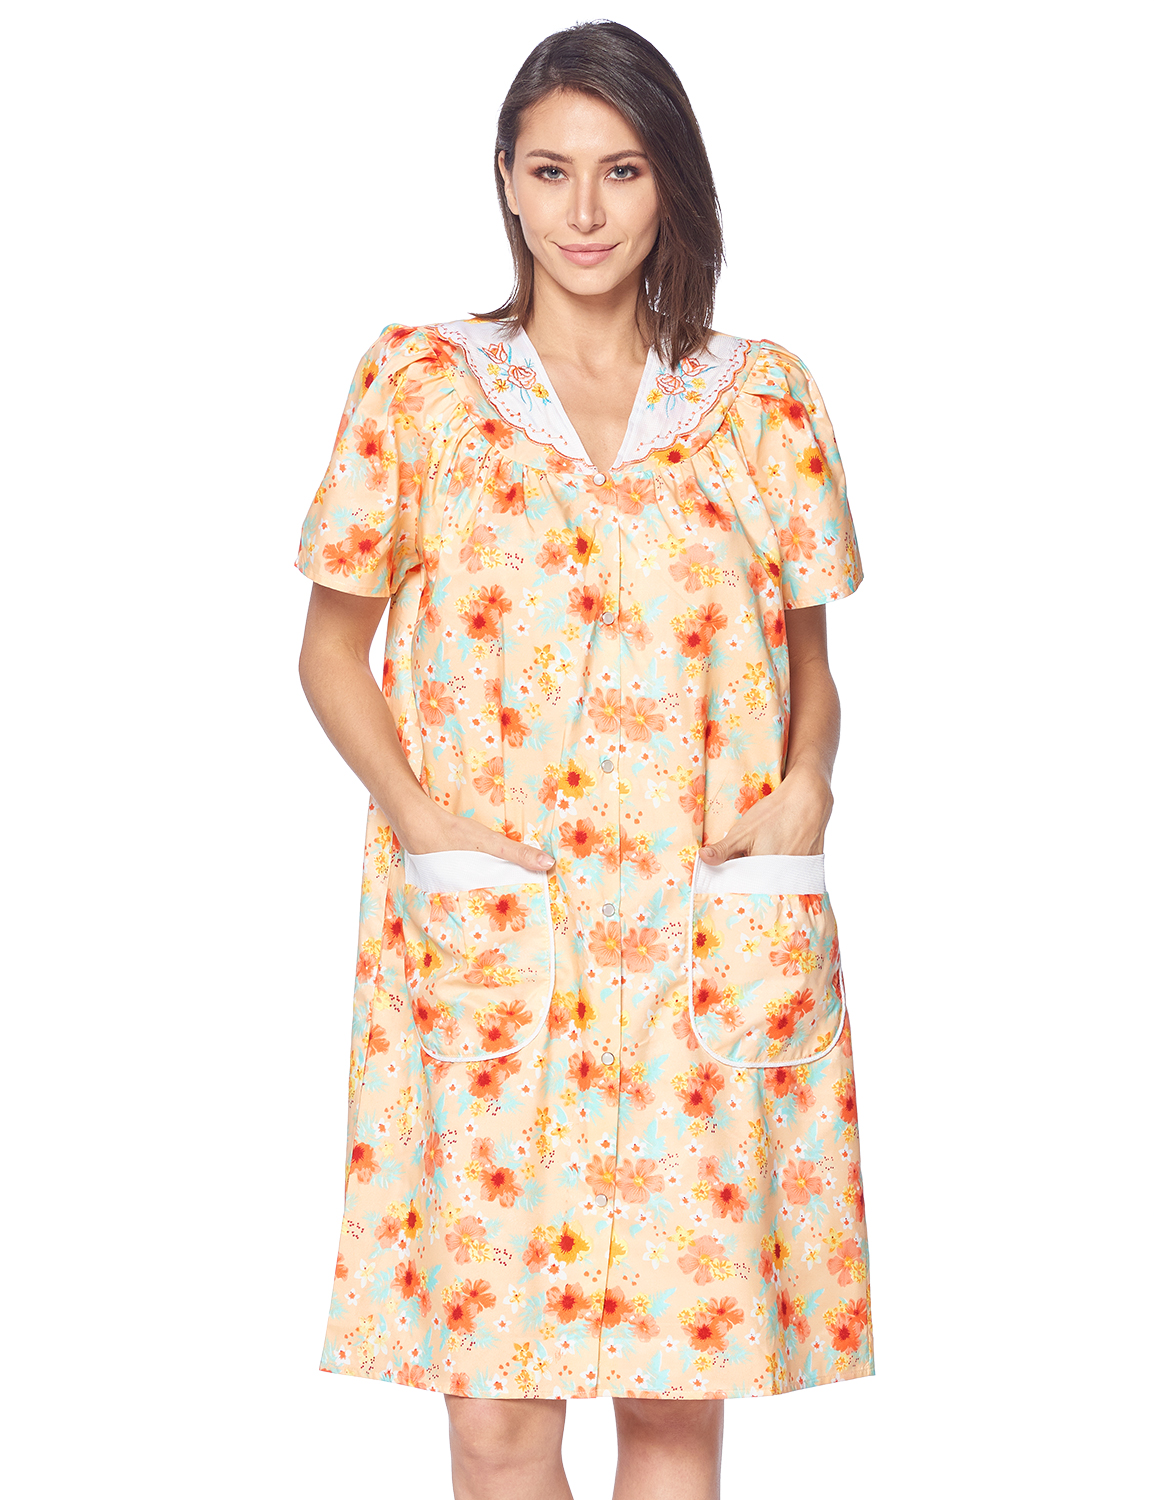 20W-22W Plus Size Womans Cotton Bland,Short Sleeve  House Dress with Pockets,2X